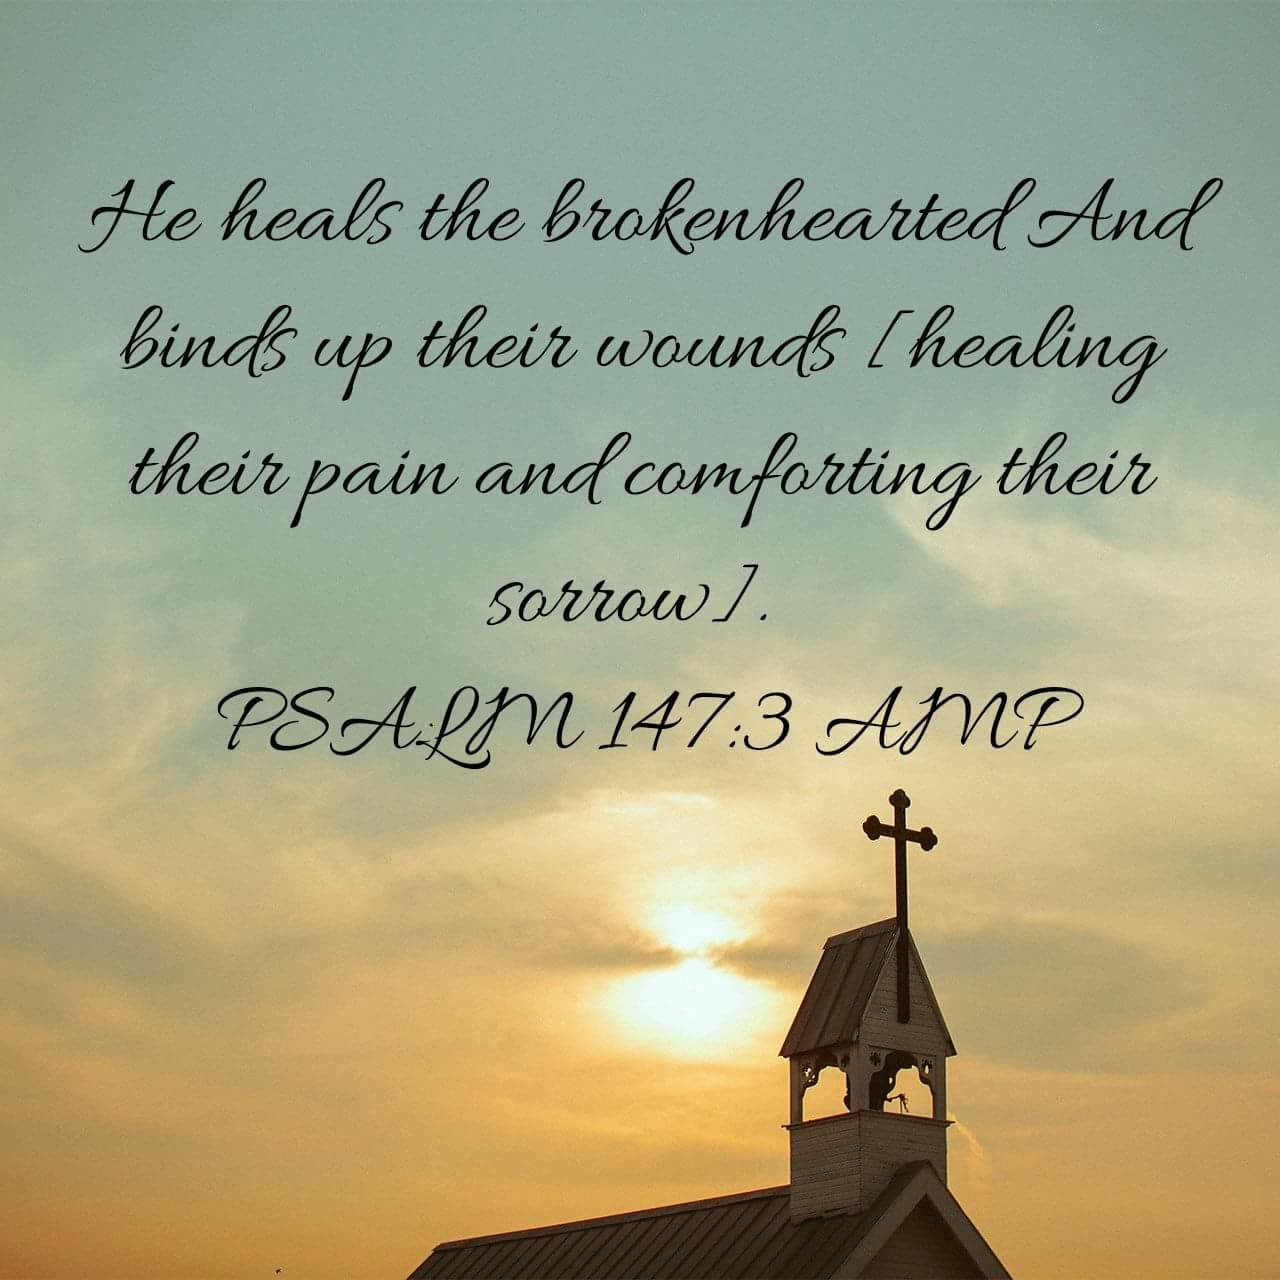 Day 5 & 6 – Thankful for Healing of the Brokenhearted